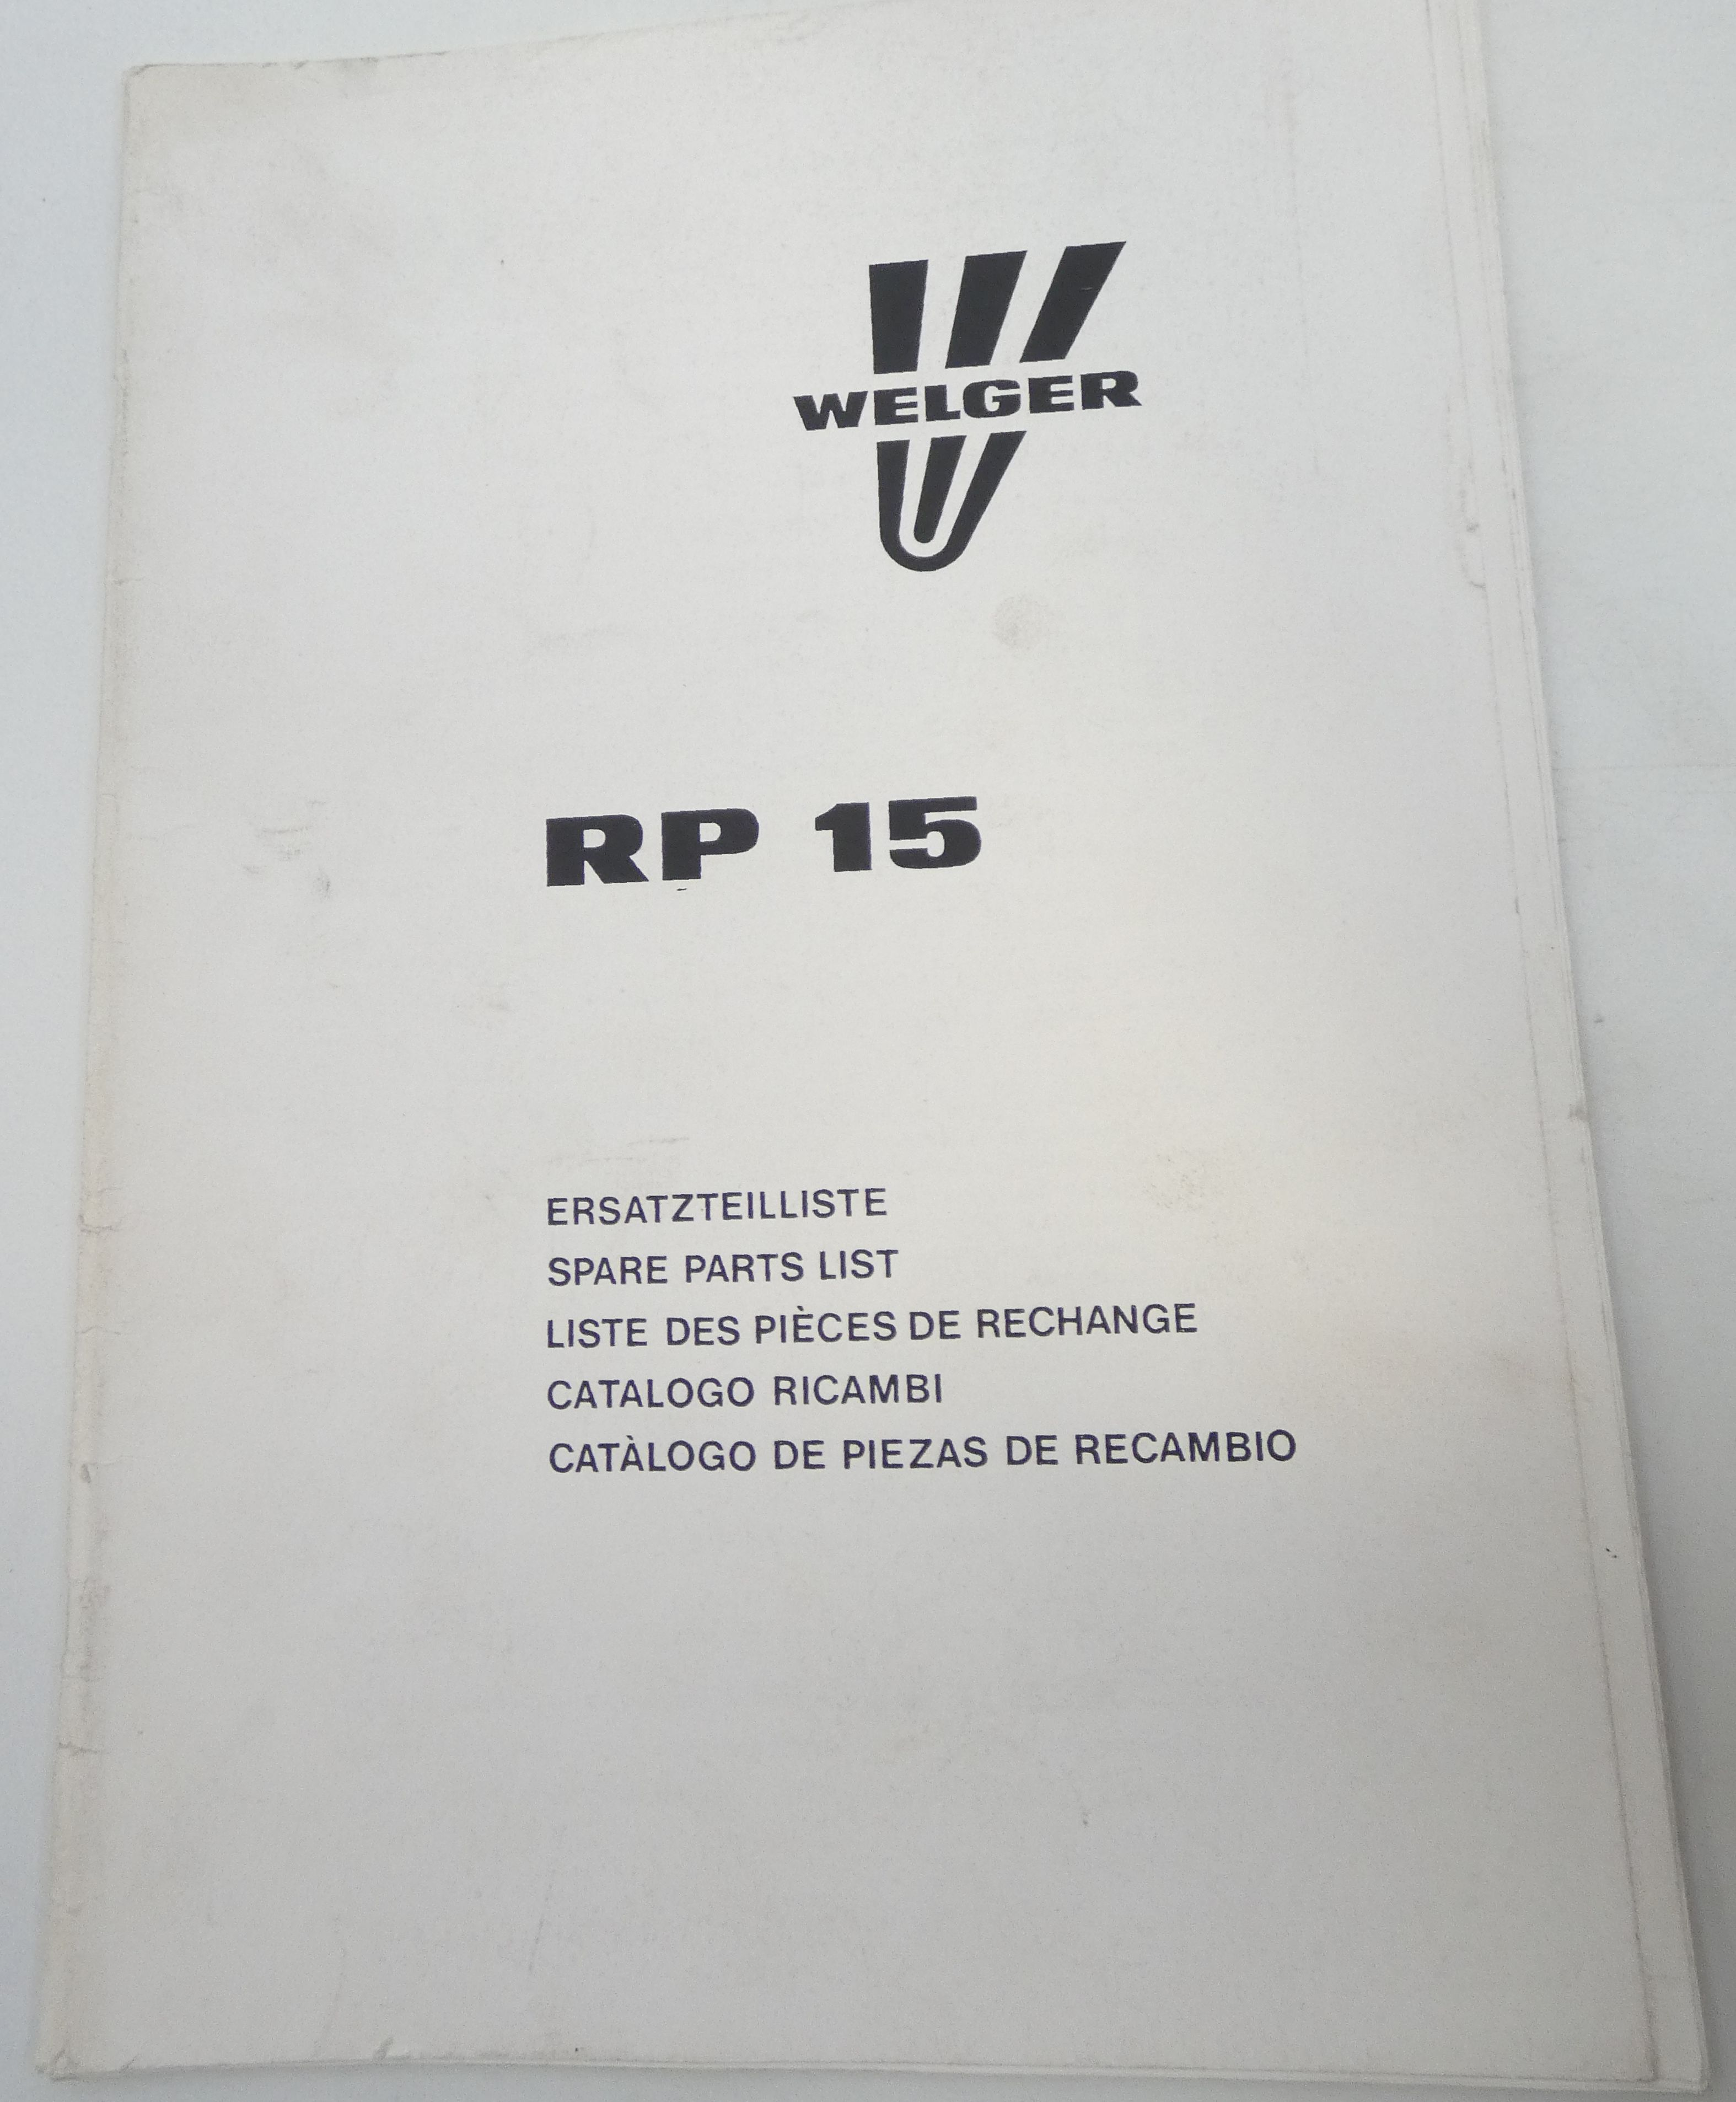 Welger RP 15 spare parts list